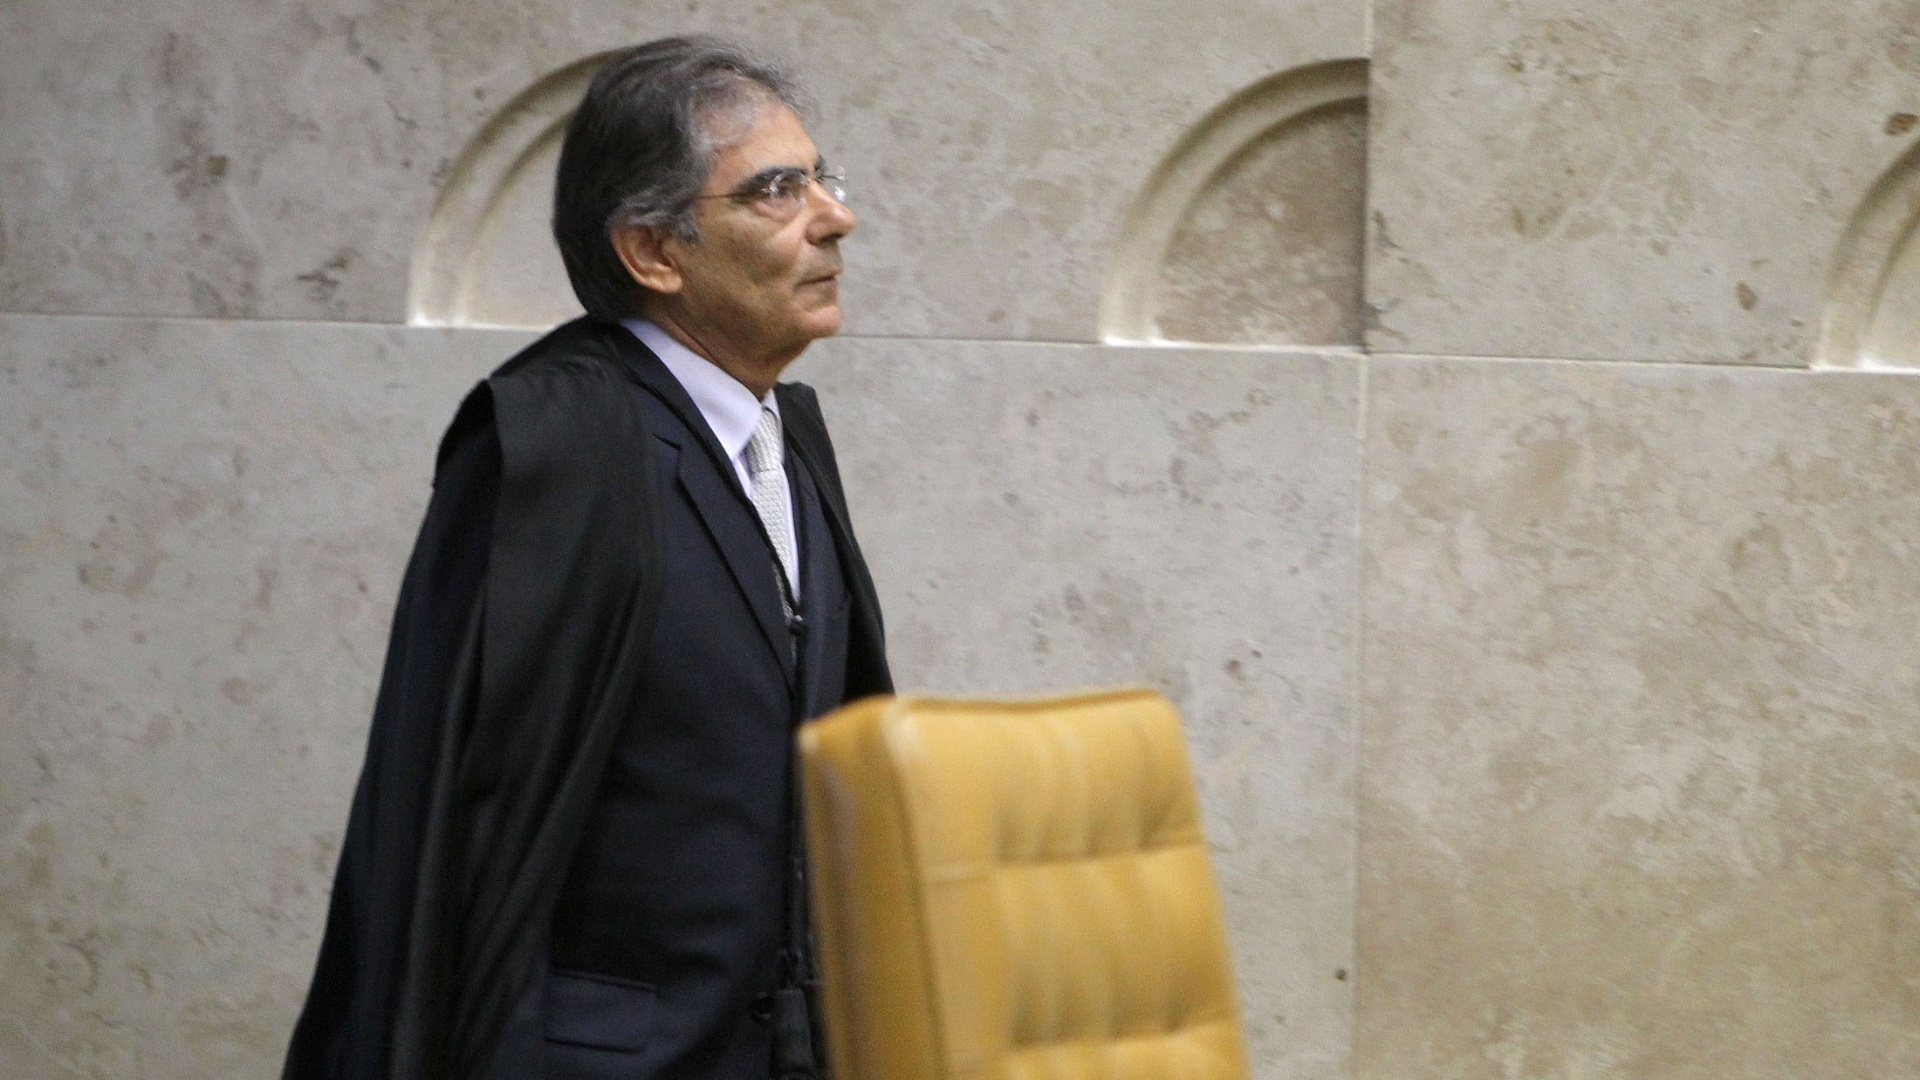 14.nov.2012 - O presidente do Supremo Tribunal Federal, o ministro Ayres Britto, faz a primeira entrada no plenrio para sua ltima sesso no STF. No prximo dia 18, Britto, completa 70 anos, idade limite para exercer a magistratura no Brasil, e ir se aposentar 